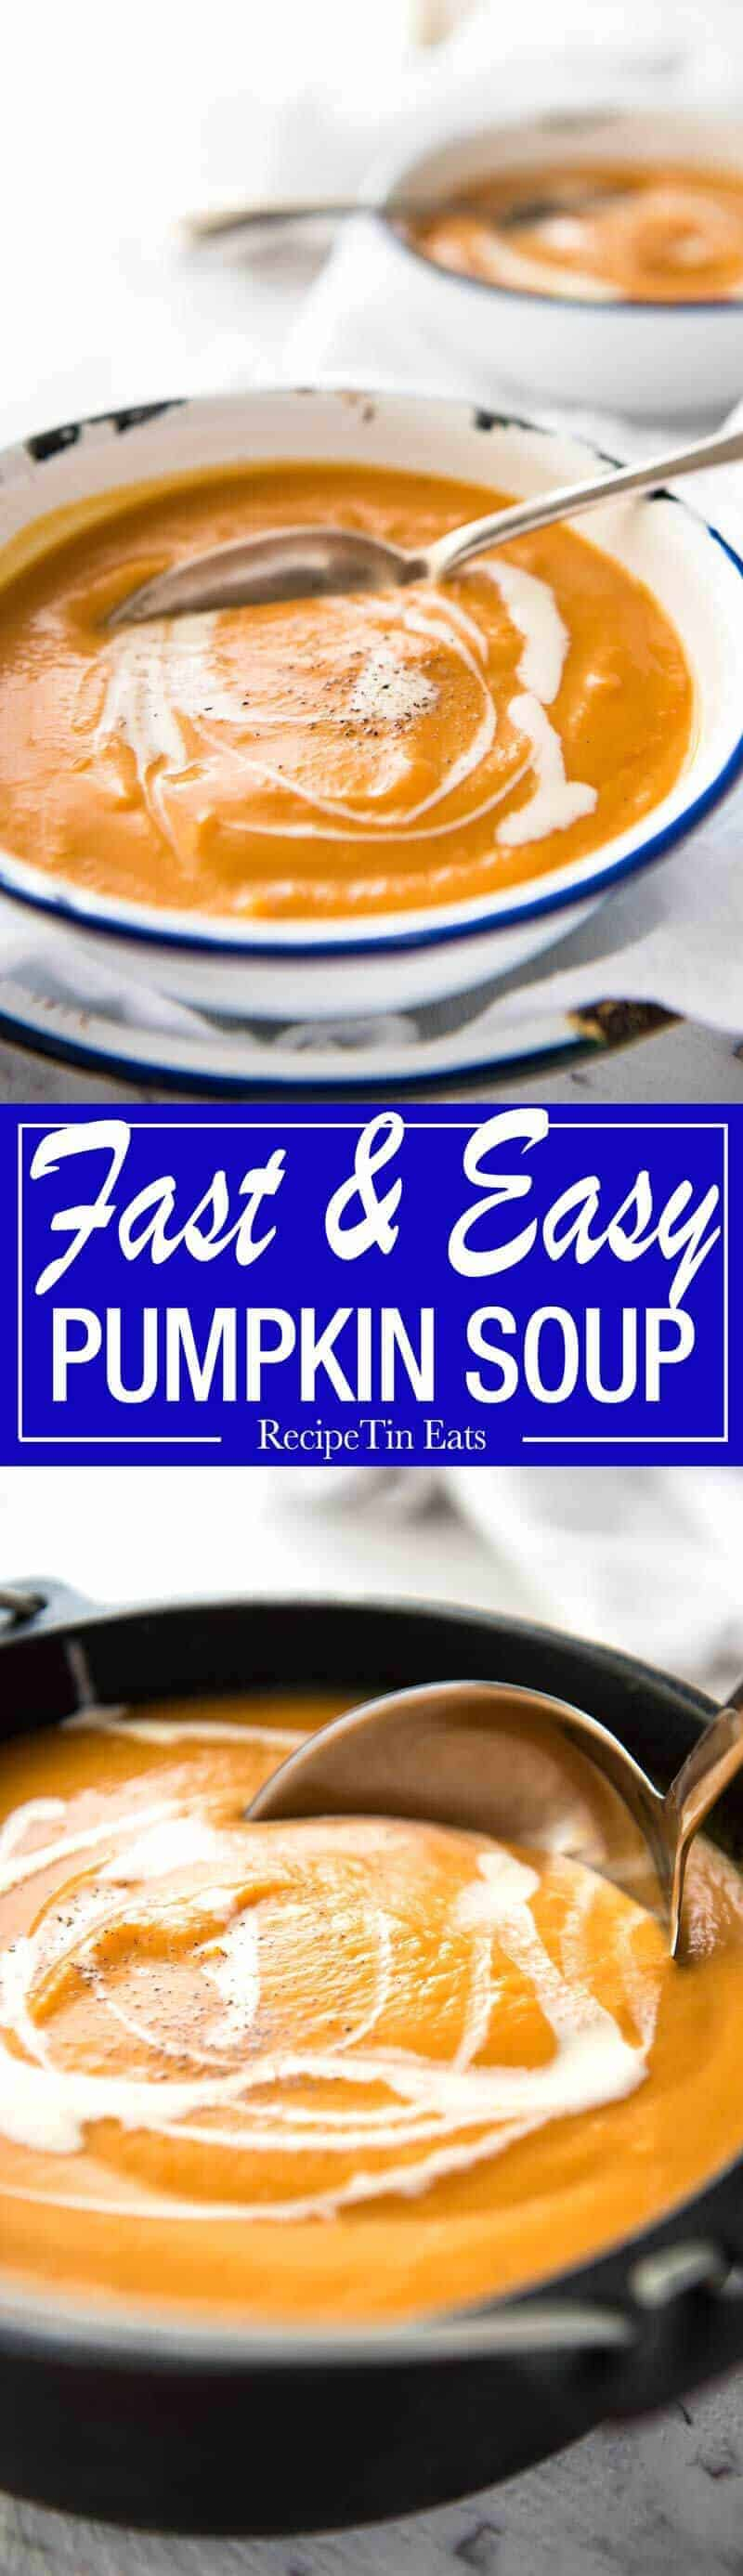 Classic Easy Pumpkin Soup - On the table in 15 minutes! Made with fresh pumpkin or butternut squash www.recipetineats.com